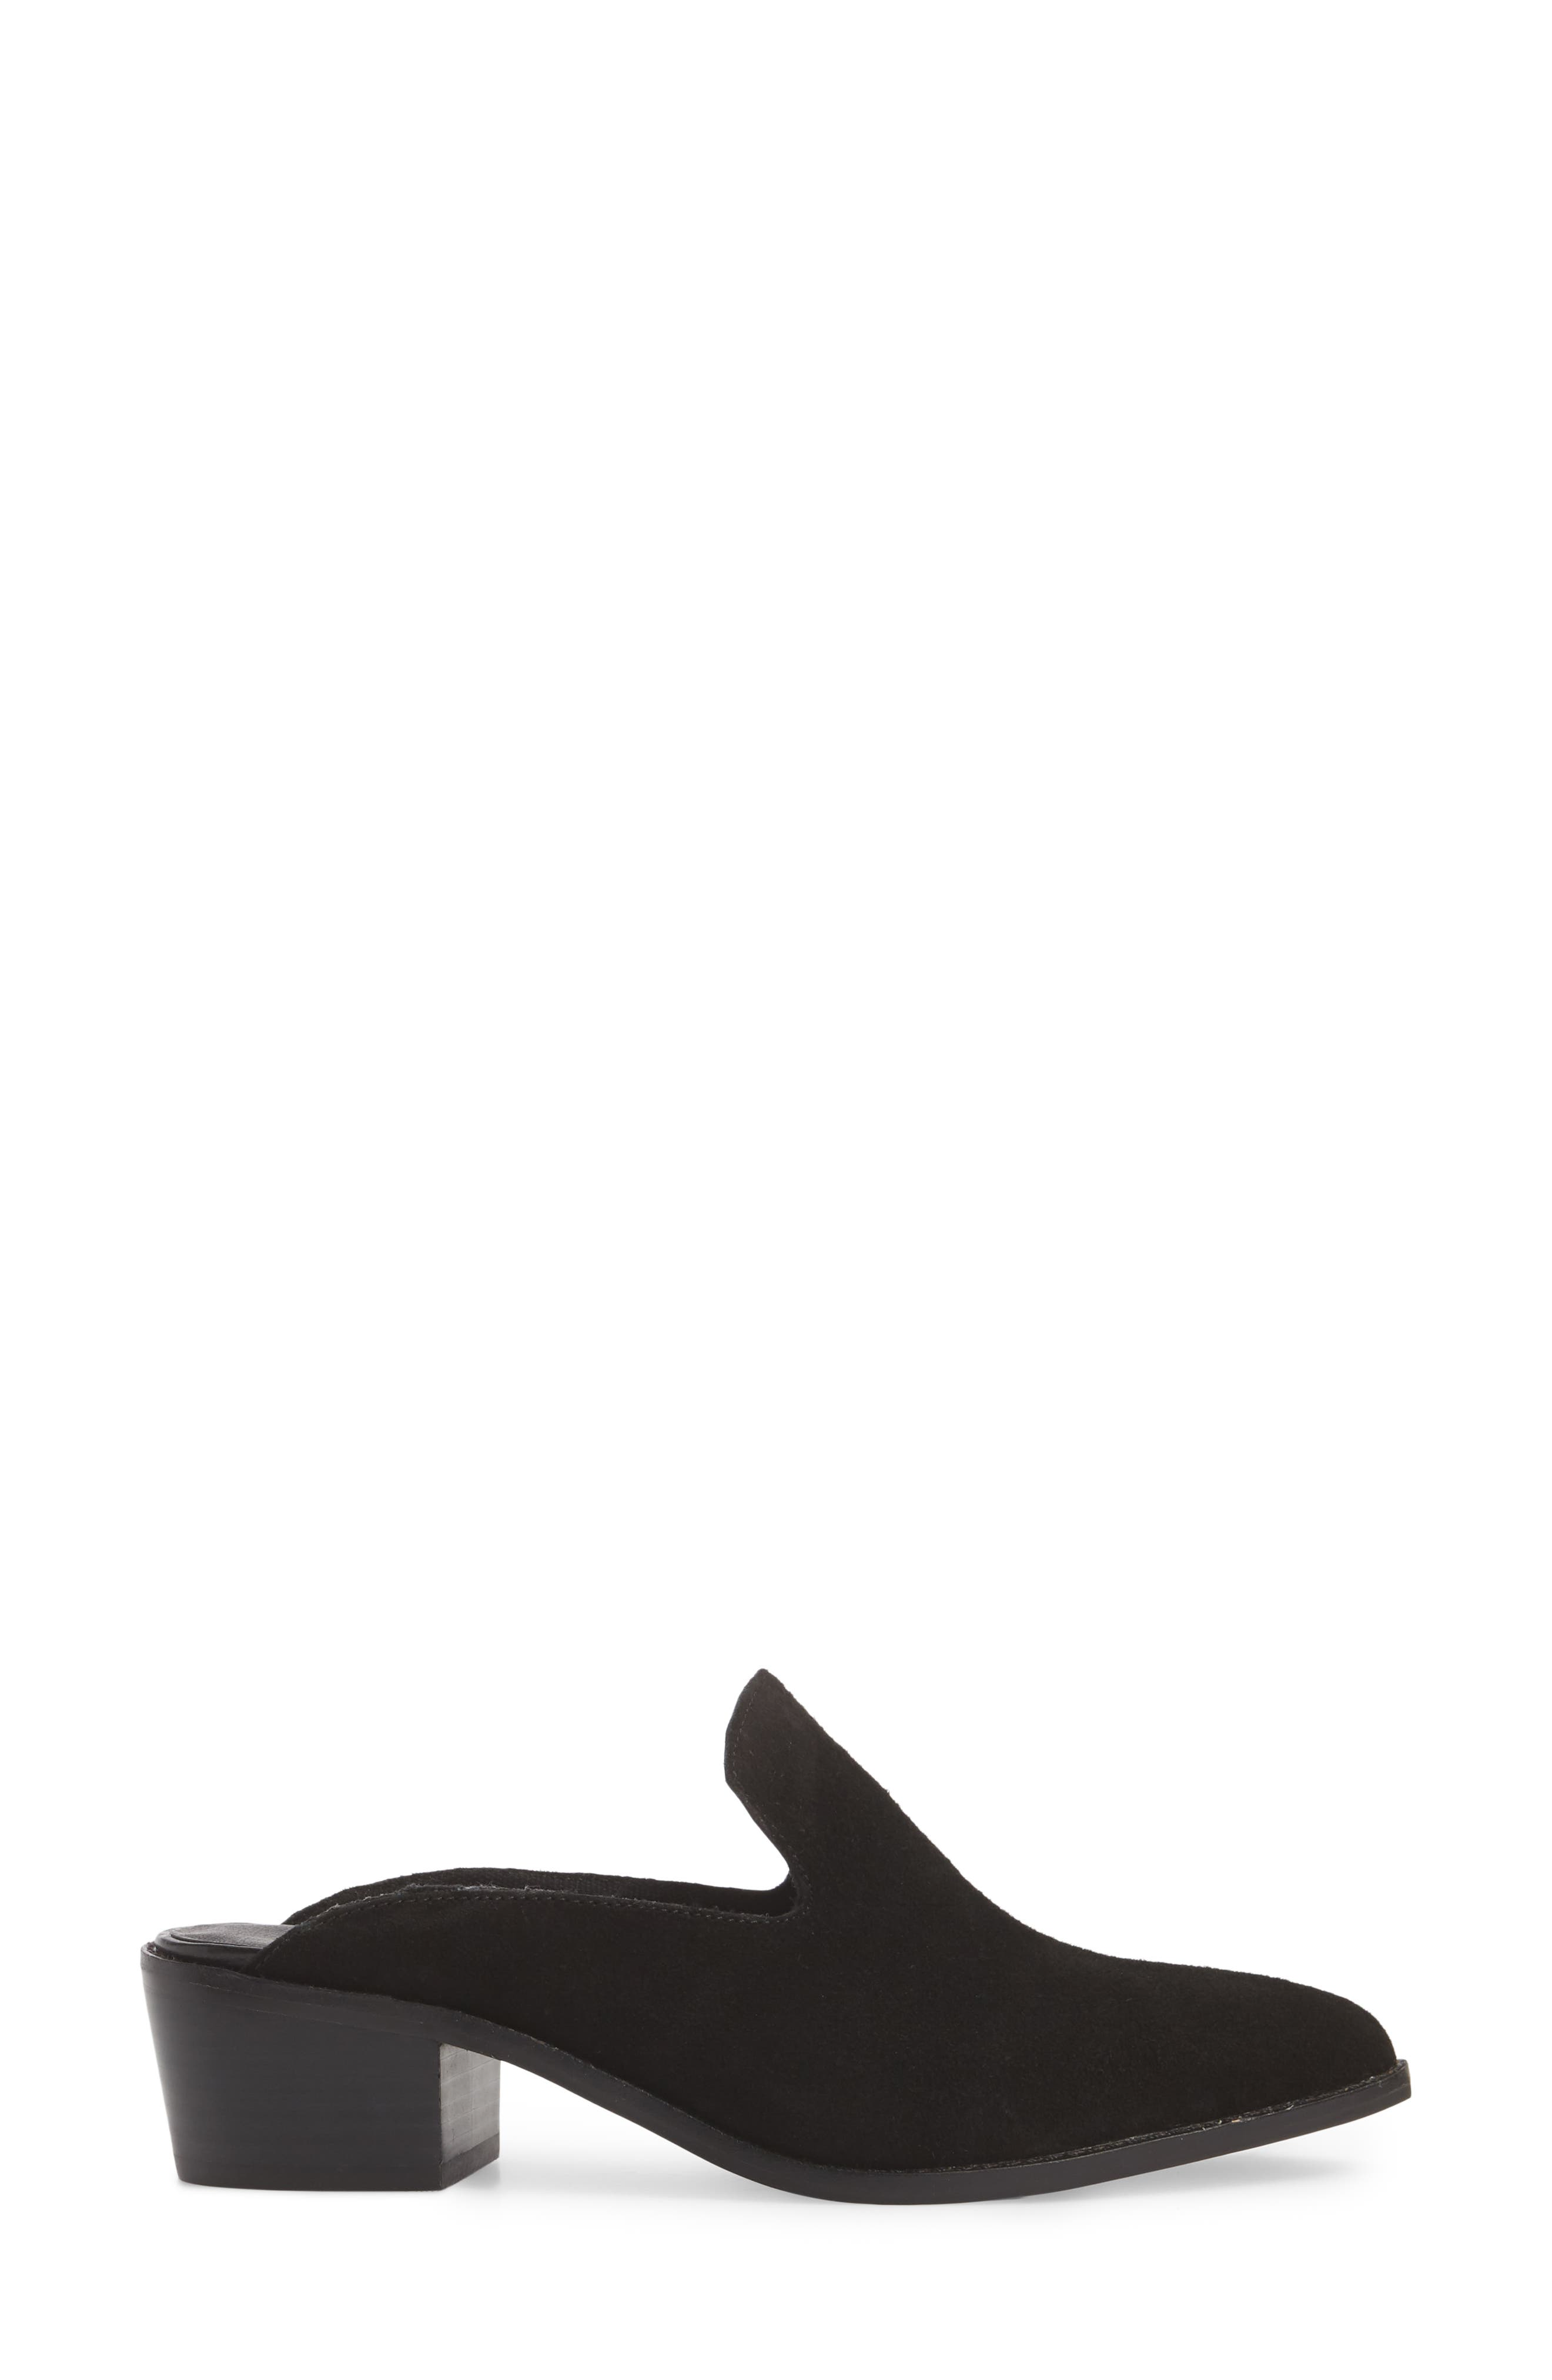 CHINESE LAUNDRY,                             Marnie Loafer Mule,                             Alternate thumbnail 3, color,                             001